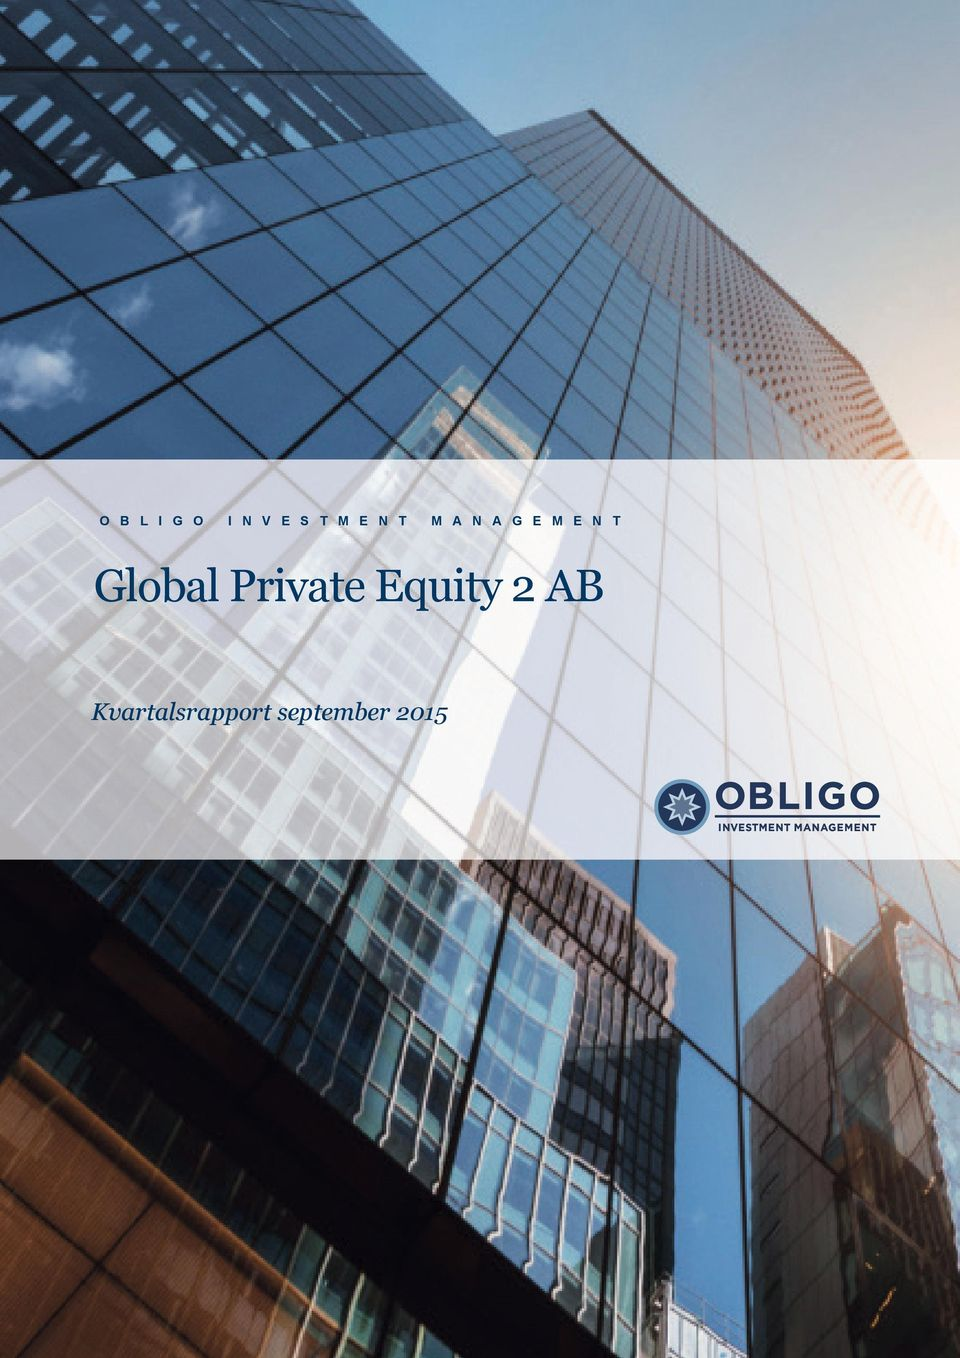 Global Private Equity 2 AB